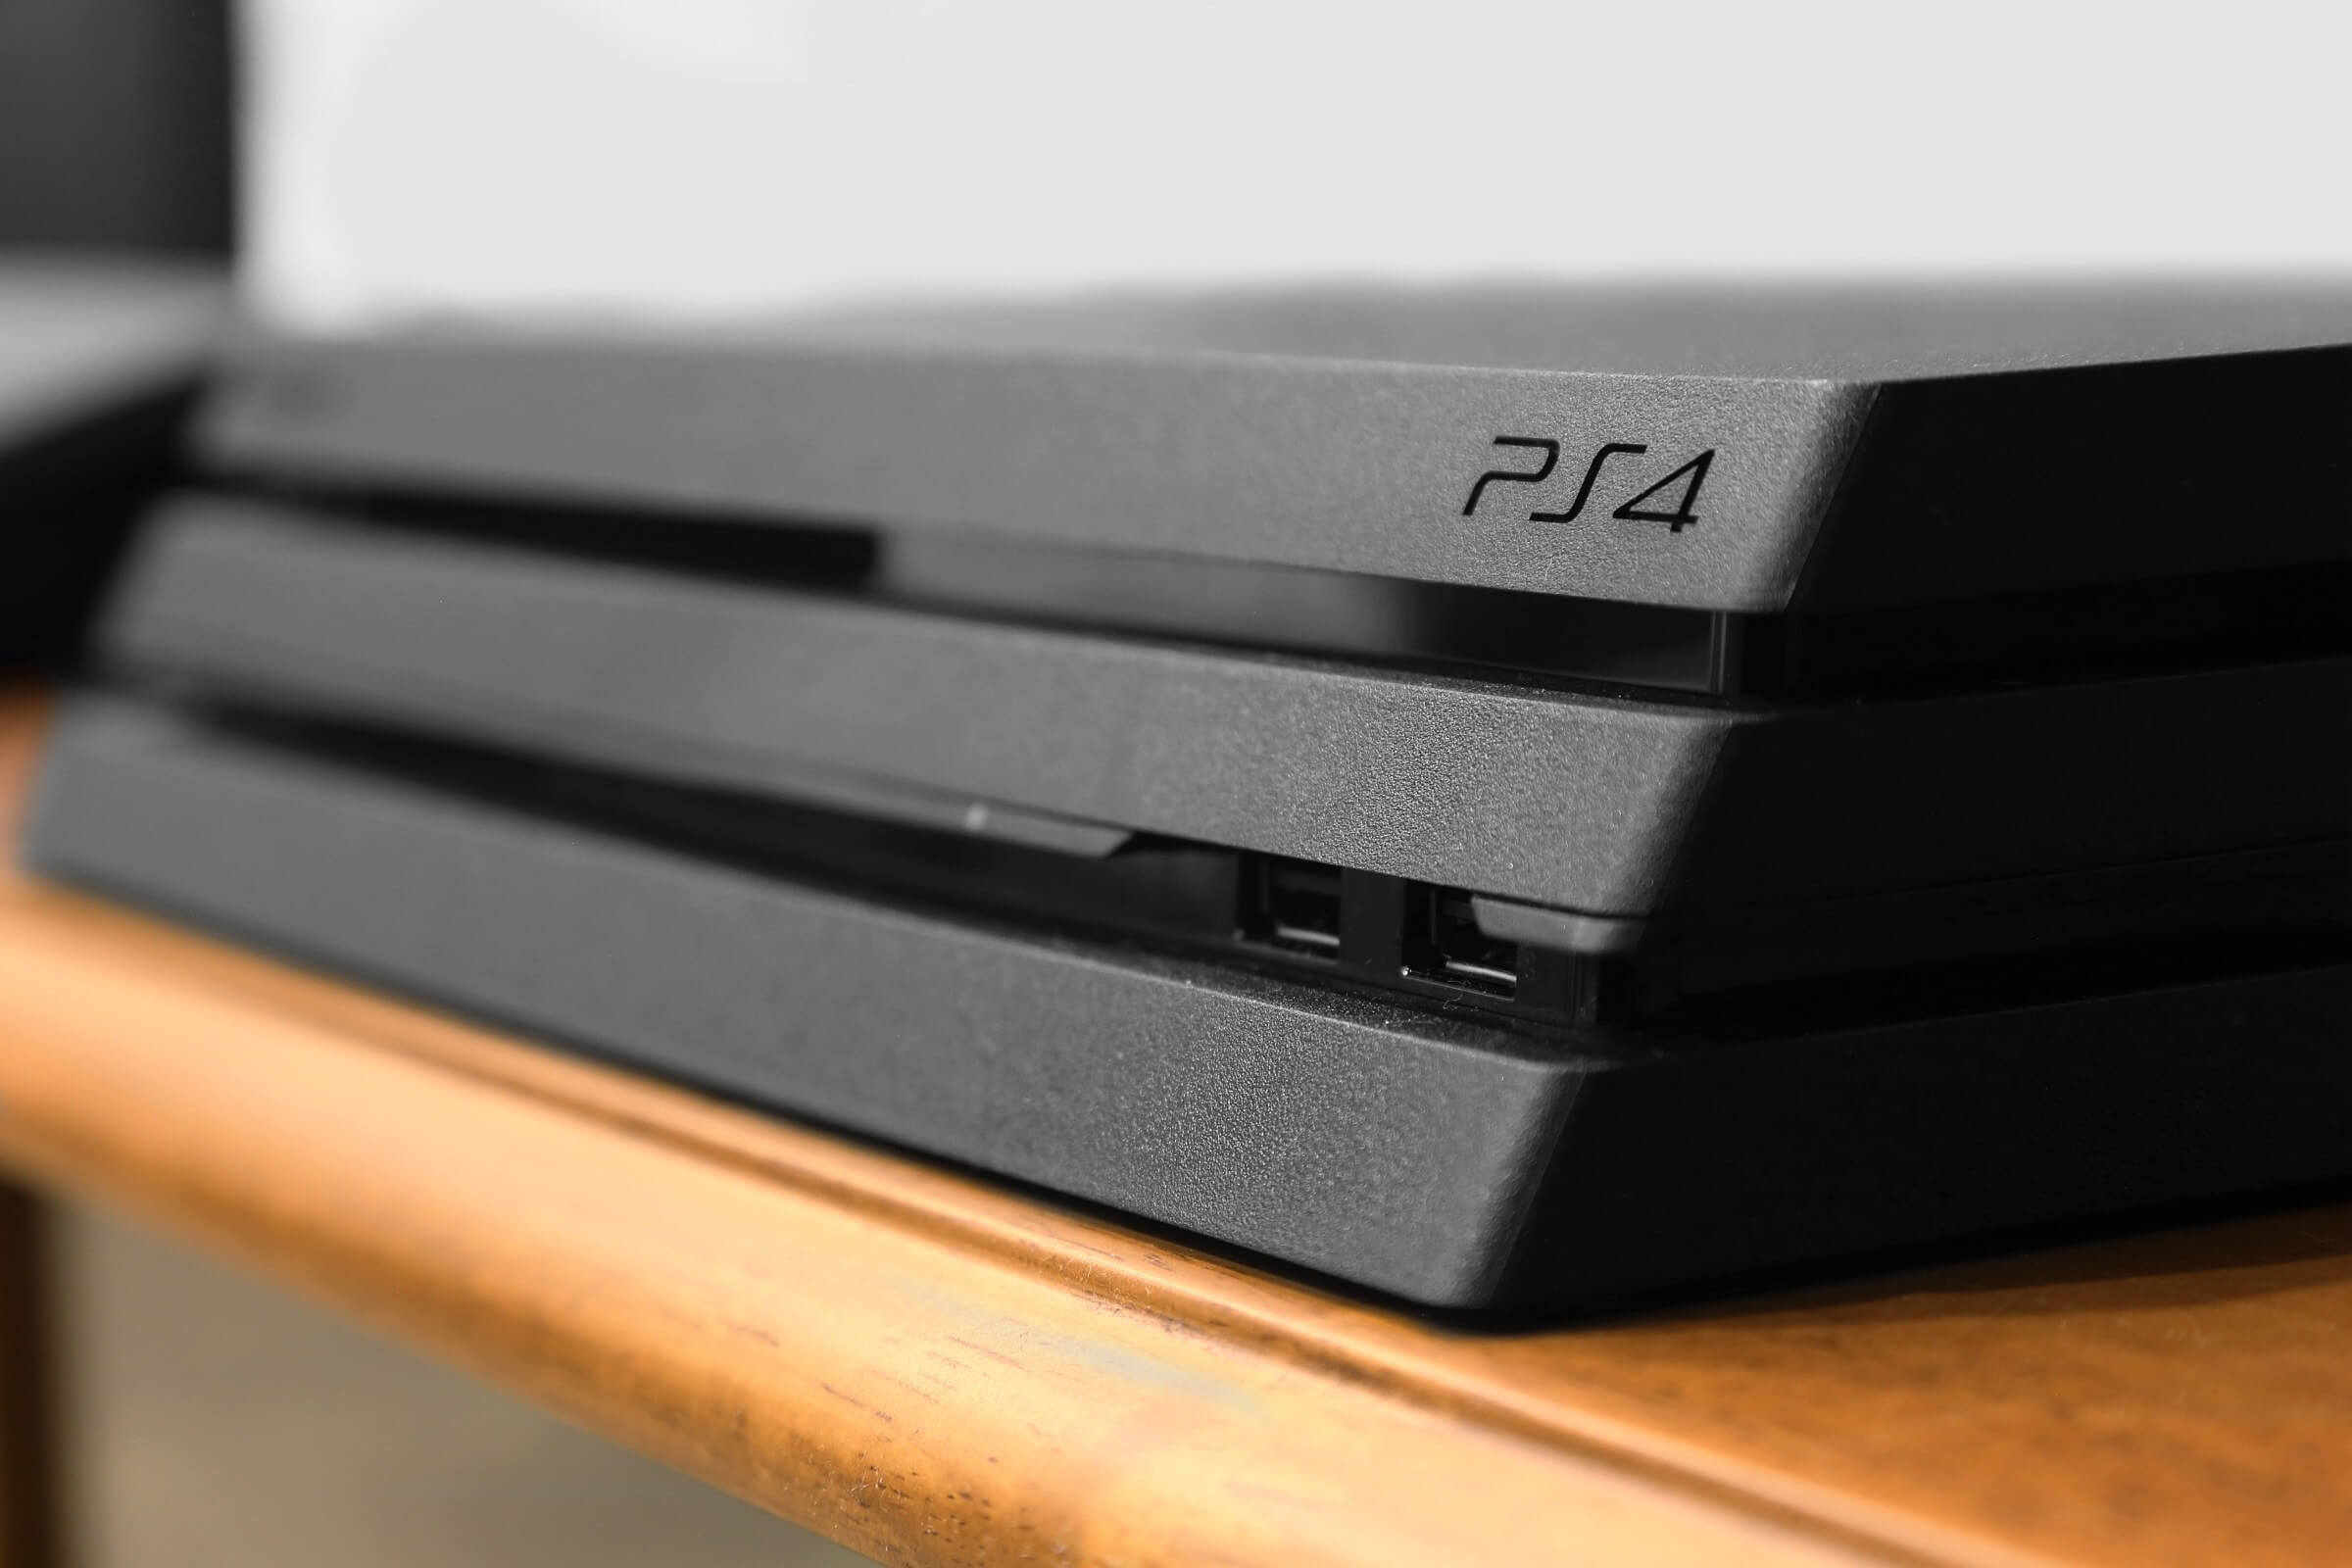 Sony Released a Quieter Version of the PS4 Pro Without Telling Anyone